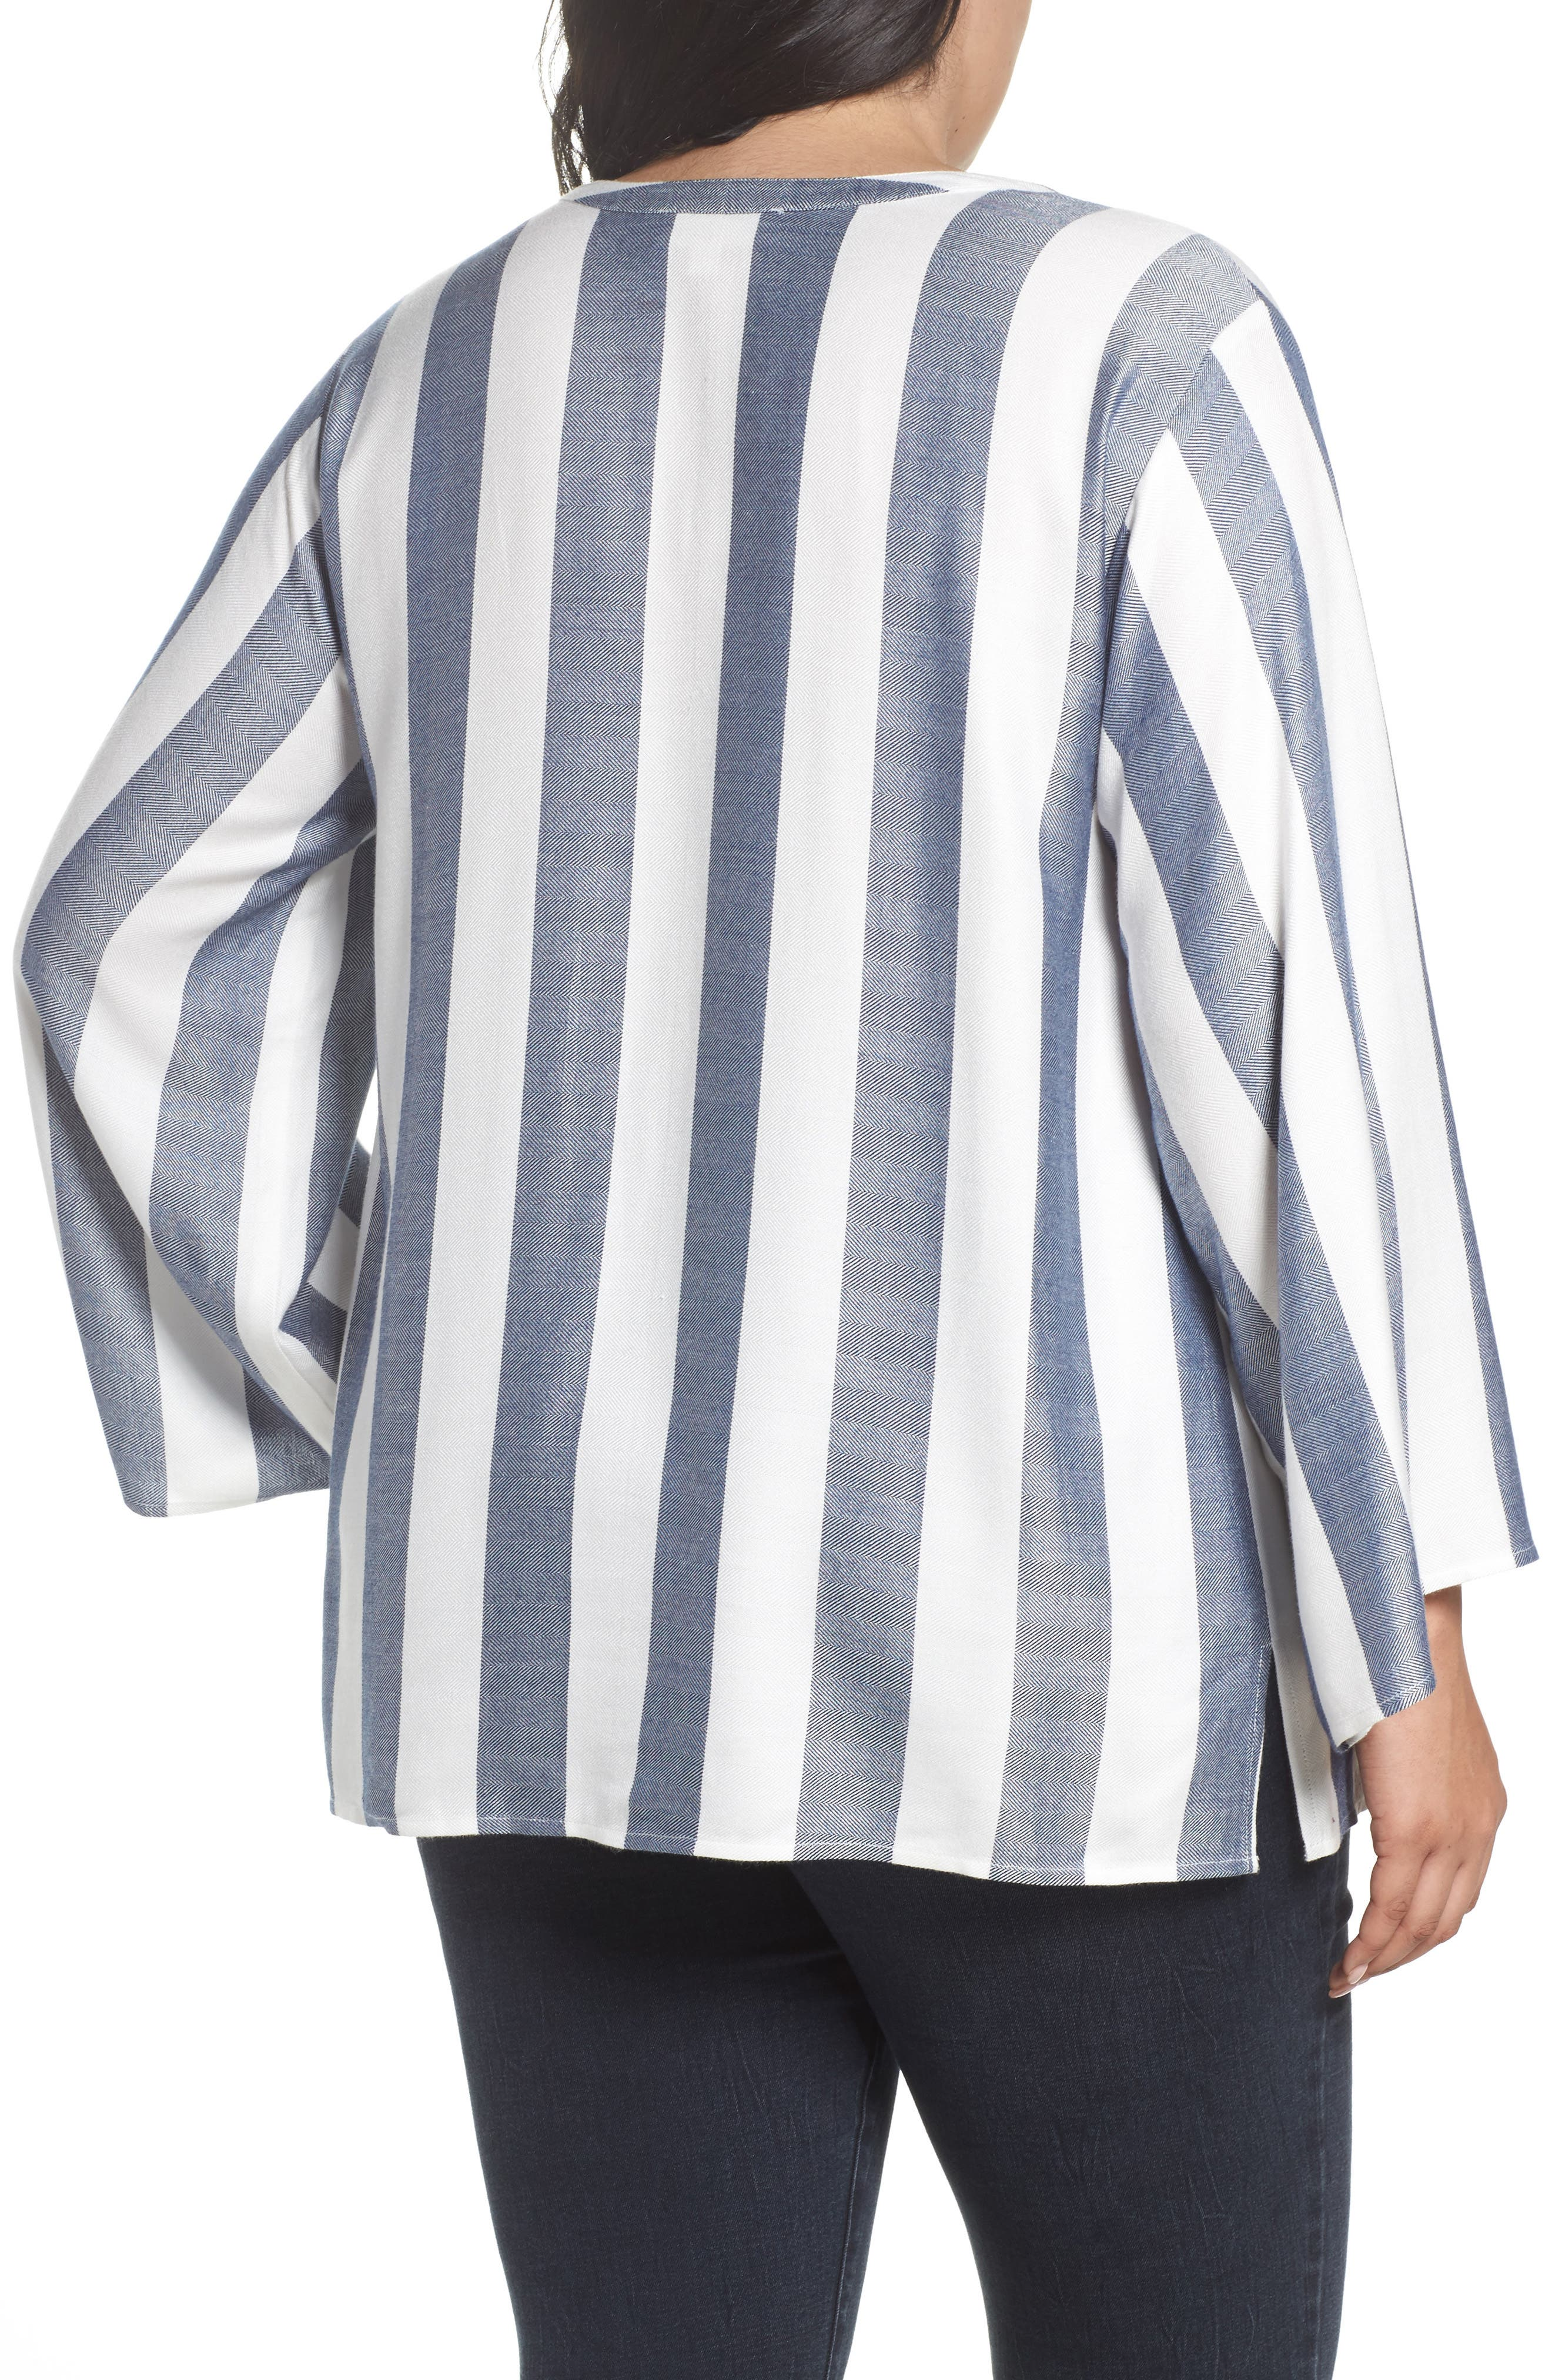 Alternate Image 2  - Two by Vince Camuto Bell Sleeve Stripe Top (Plus Size)